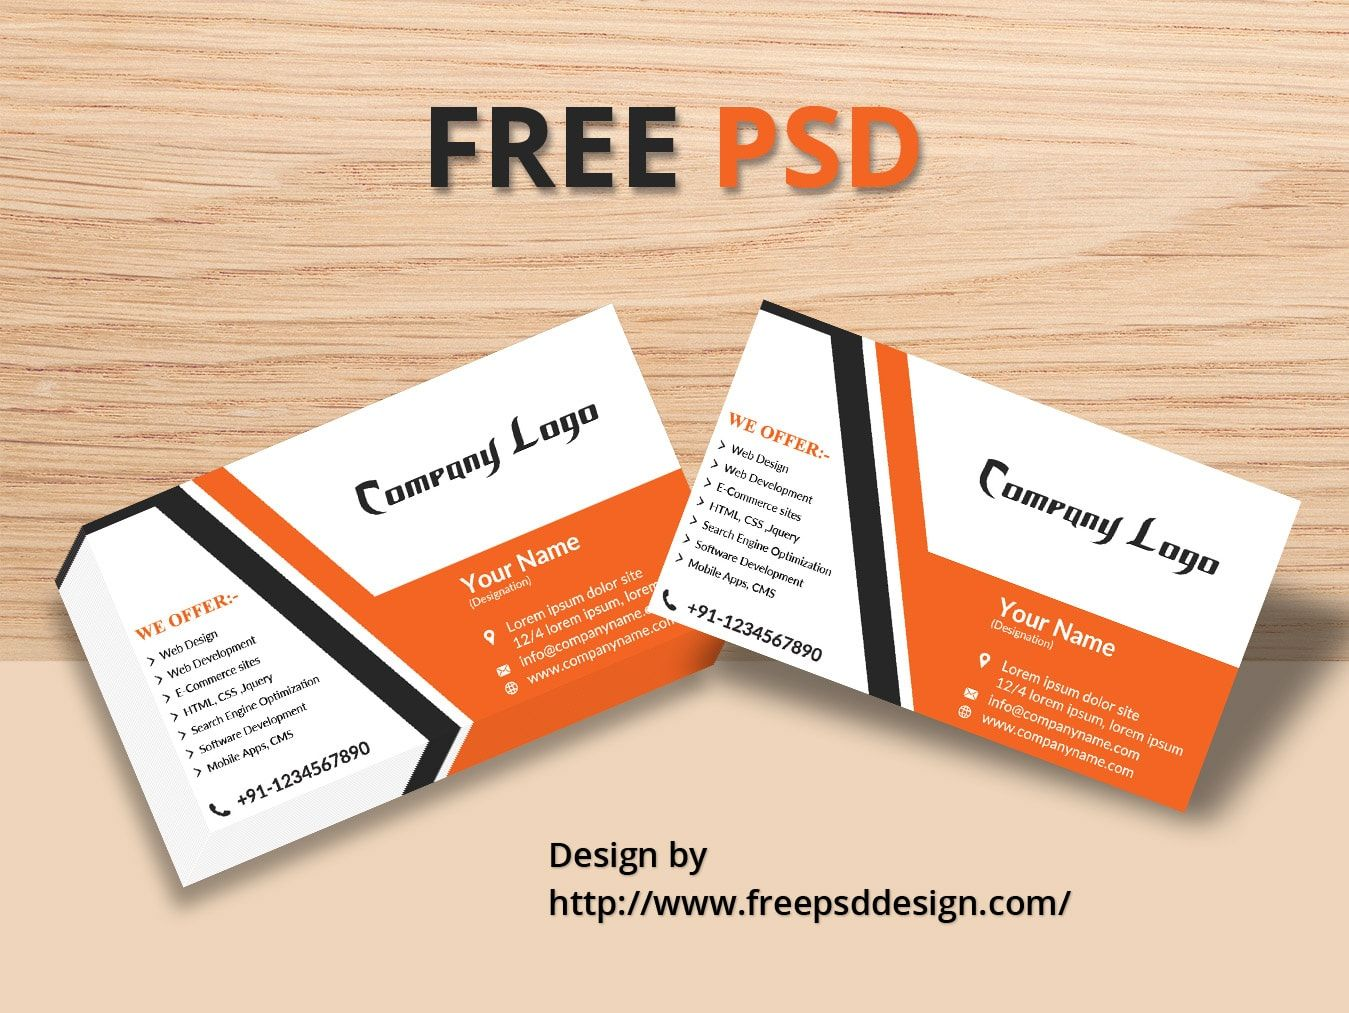 Business card mock up design layer based psd design for any business card mock up design layer based psd design for any business presented reheart Image collections